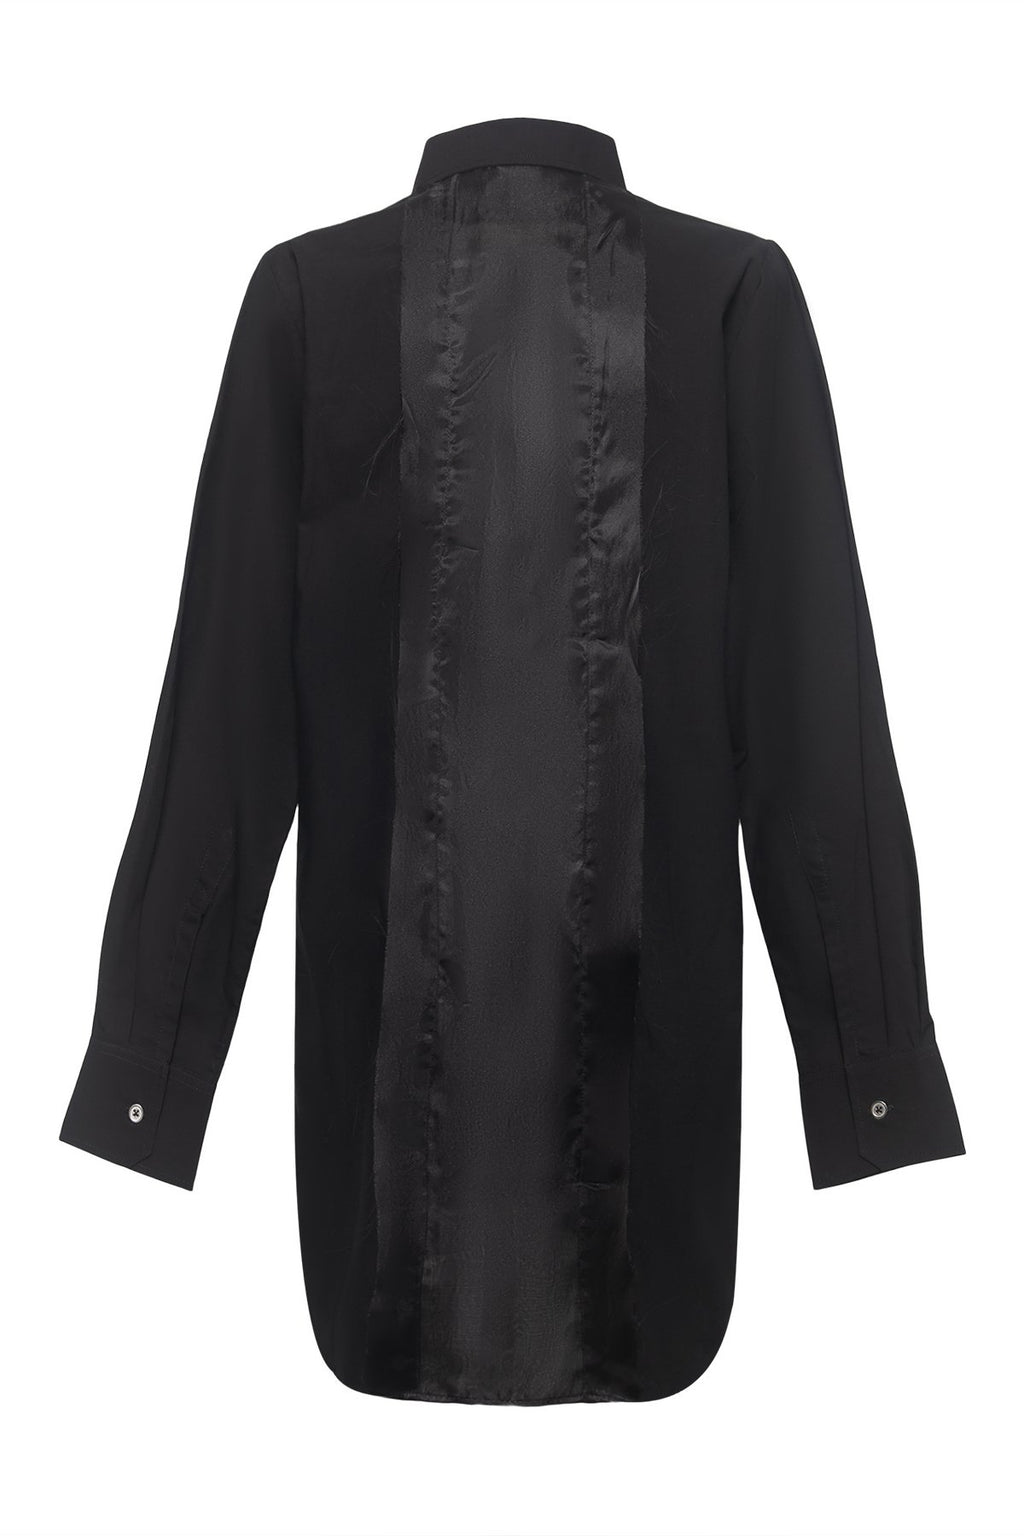 Classic Cotton Shirt with Organdy Back Panel in Black